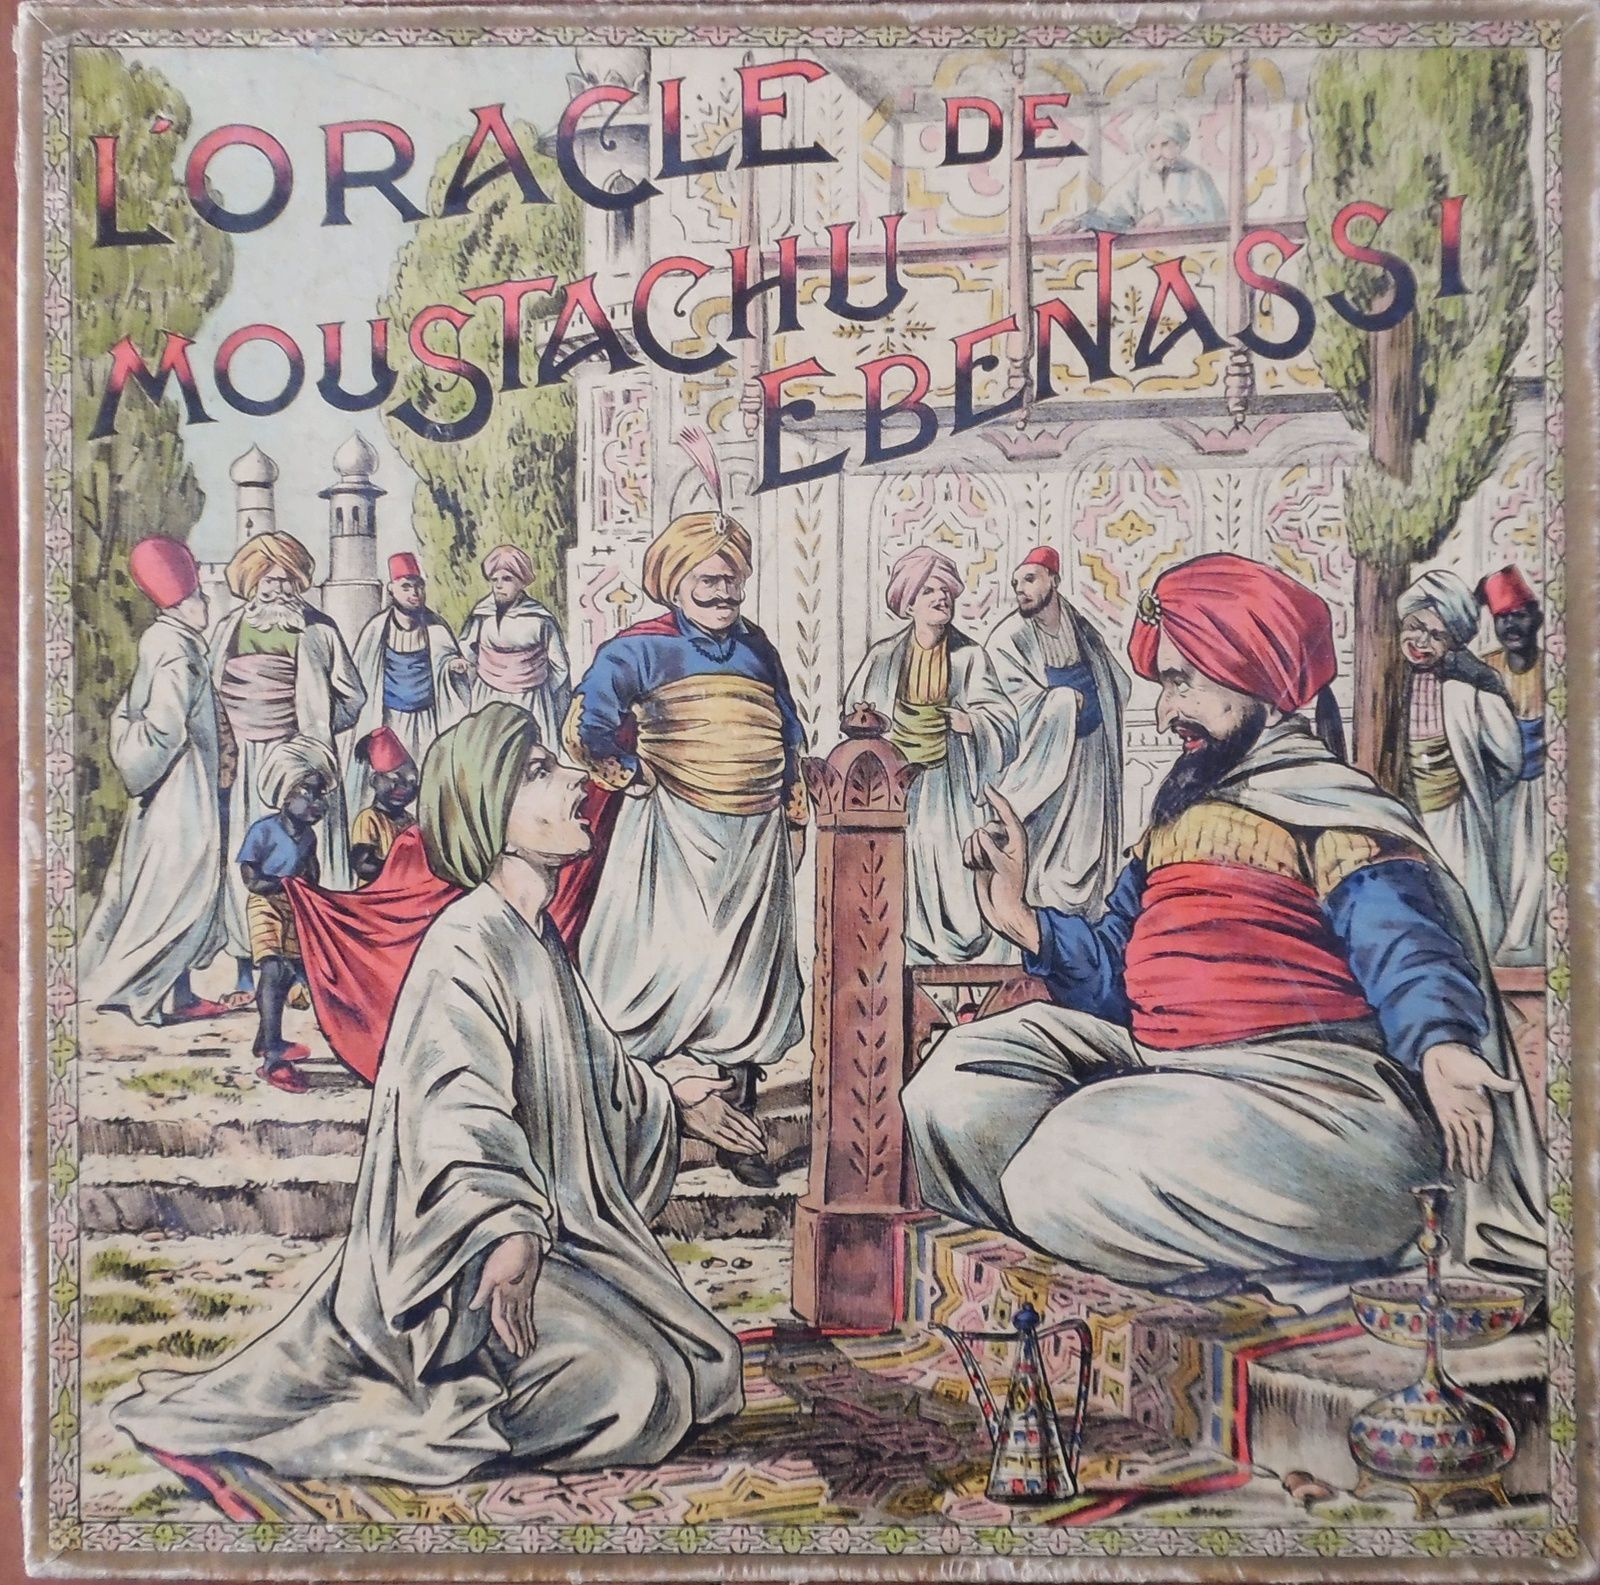 l'oracle du moustachu Ebenassi , jeu de Saussine